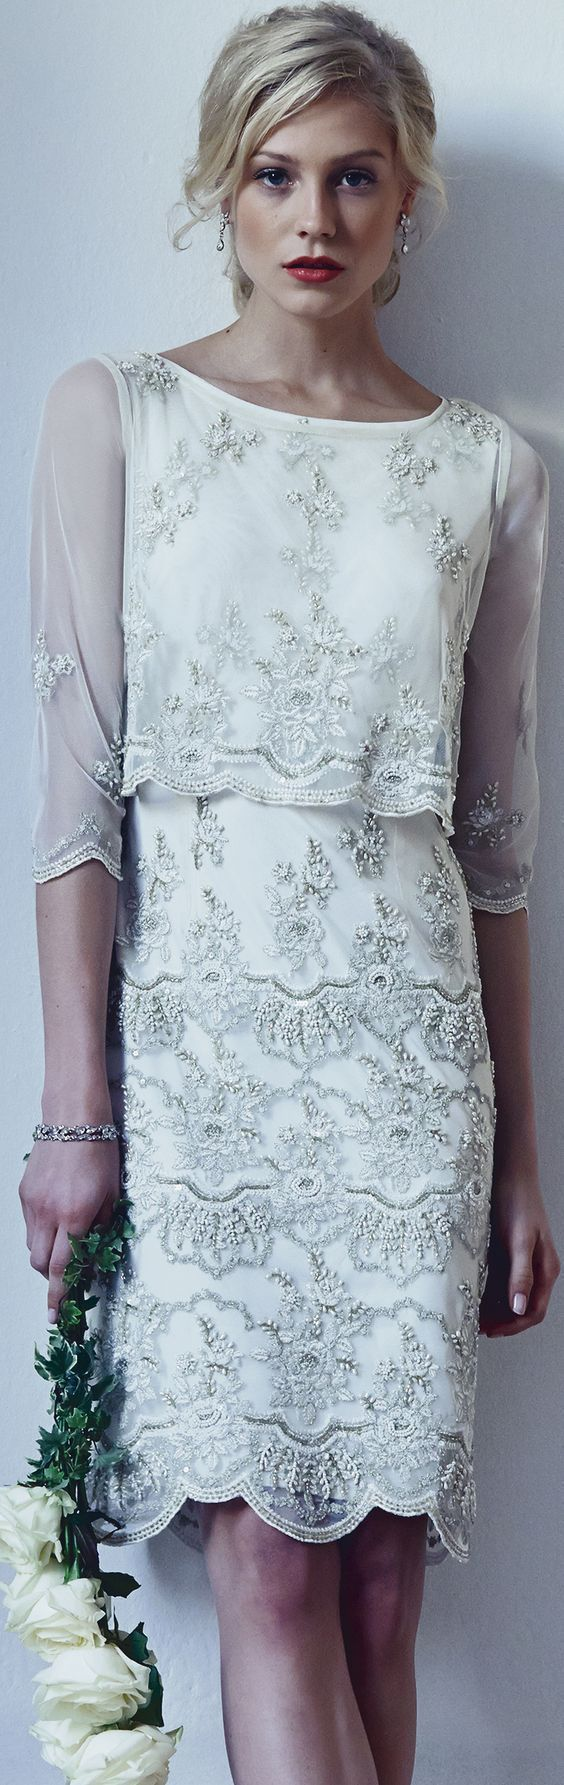 mother of the groom dresses for winter wedding 40  #Dresses #Fashion #groom #mot… mother of the groom dresses for winter wedding 40  <a class=